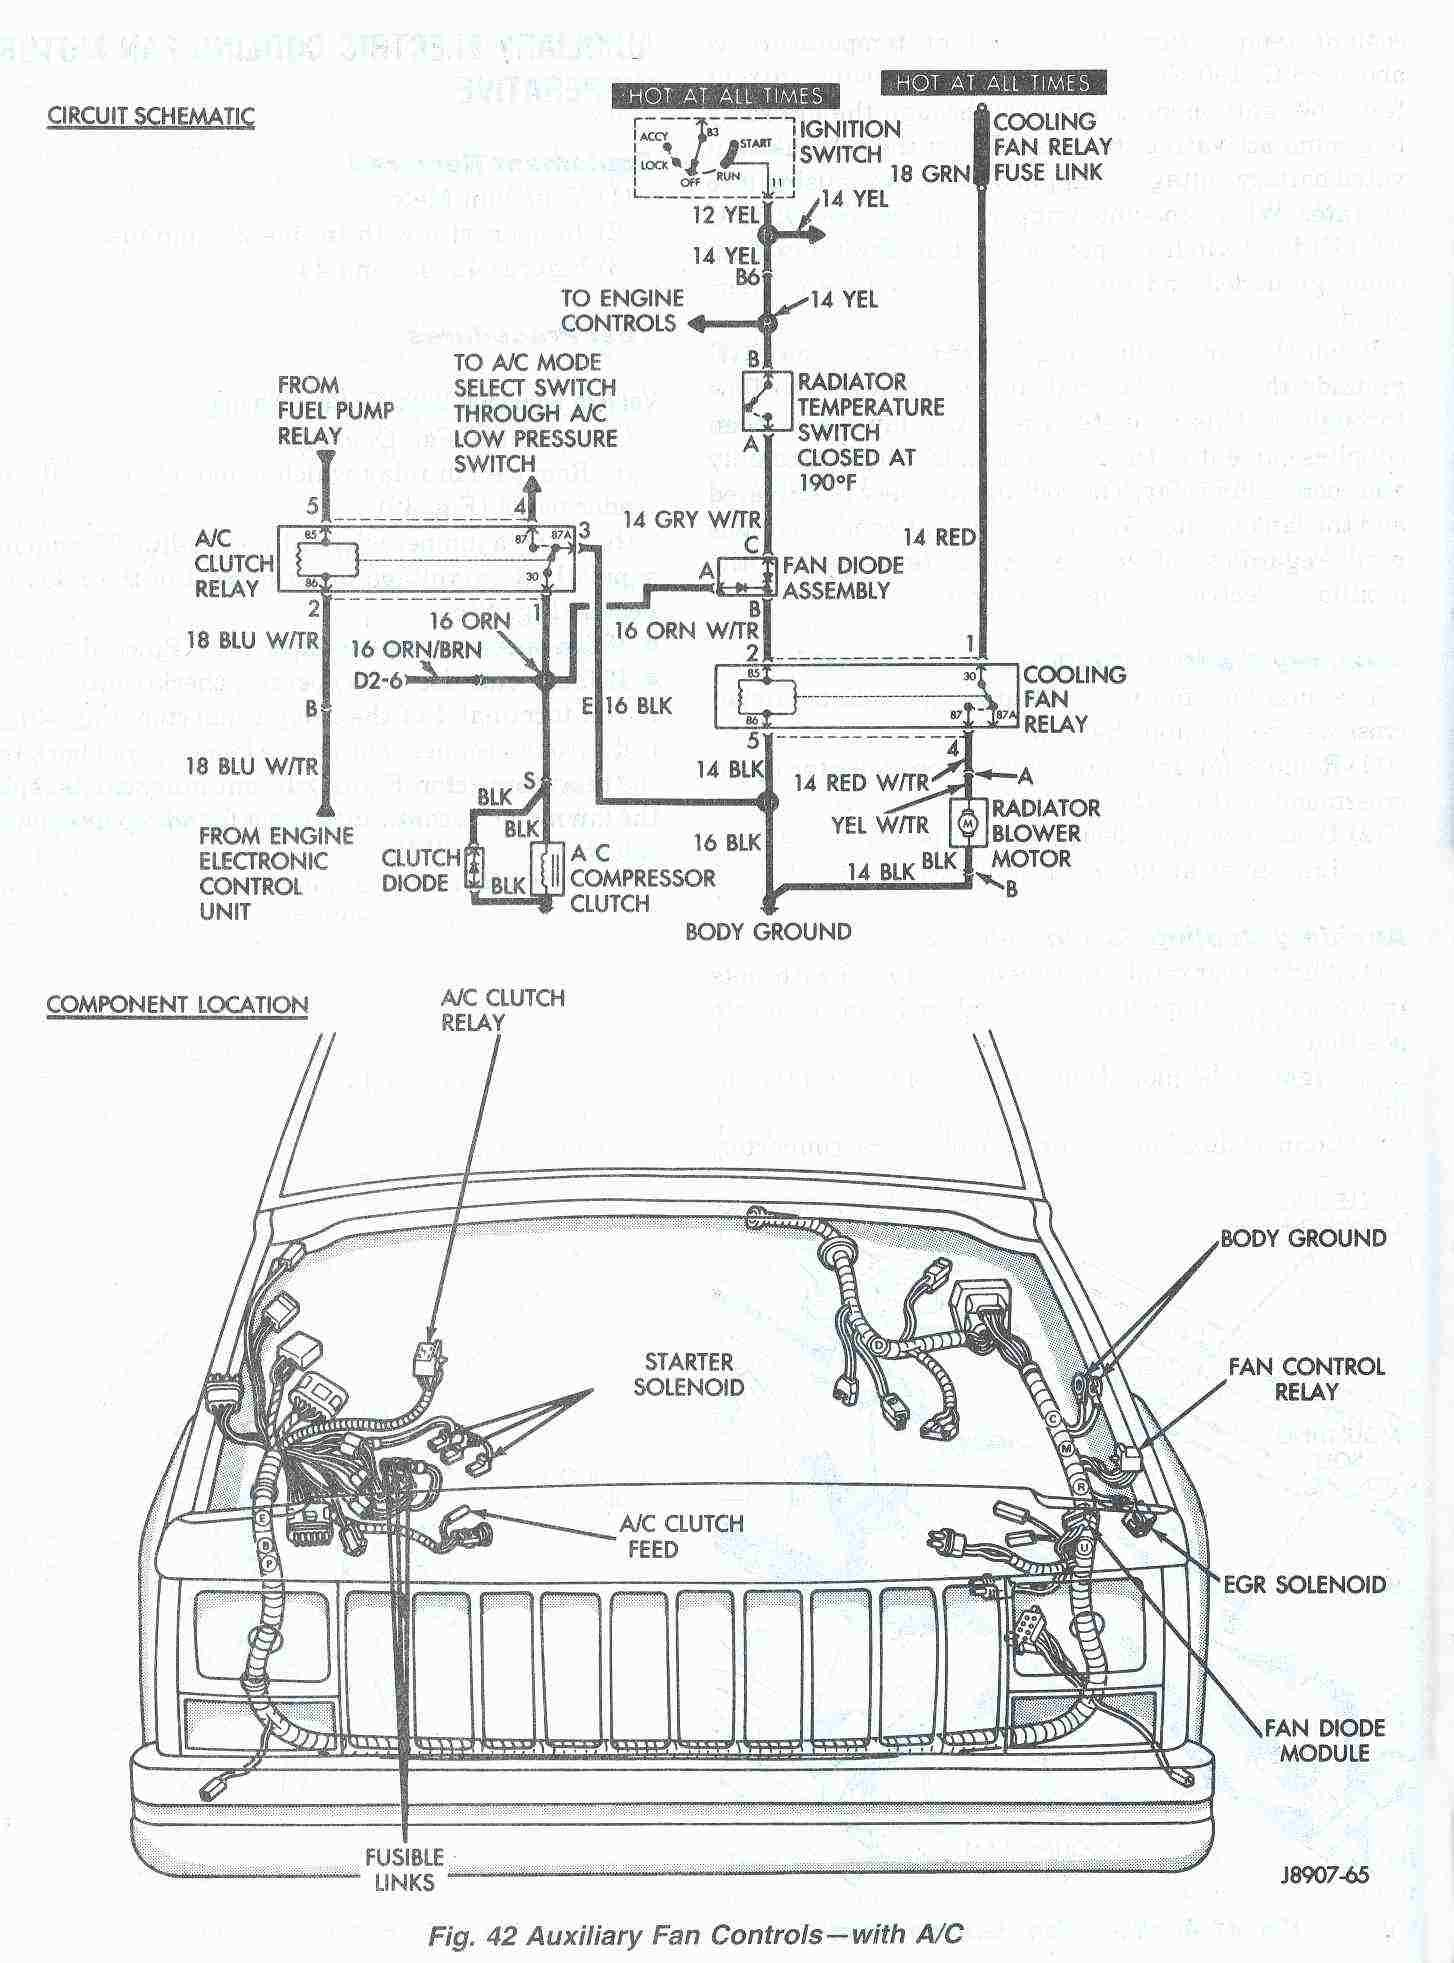 hight resolution of 2007 jeep grand cherokee engine diagram wiring diagram for ac unit thermostat along with jeep cherokee